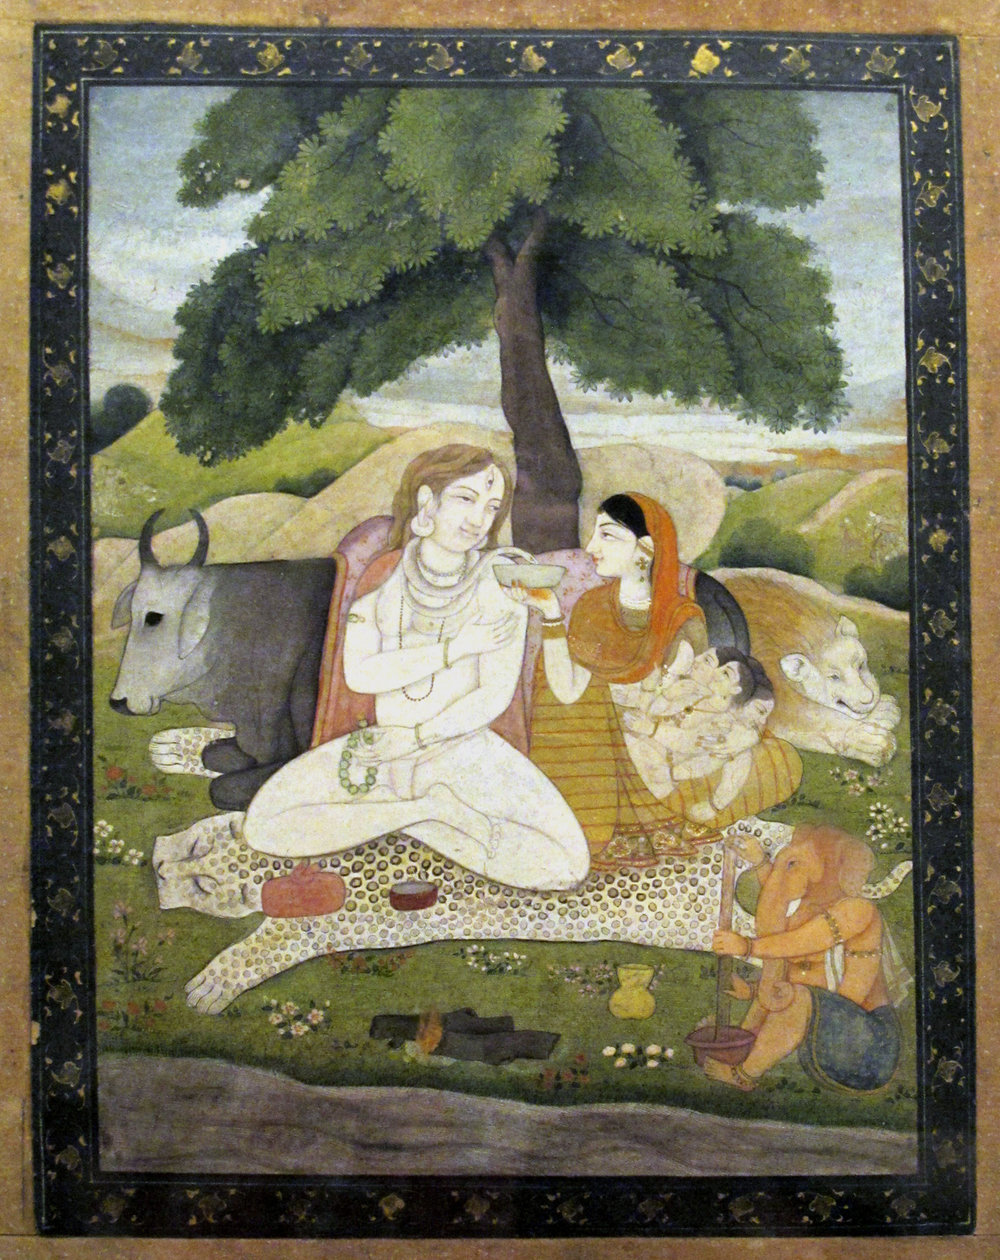 Shiva e la sua famiglia/ Shiva and his family    Acquerello e tempera su carta, fine secolo XVIII/  Watercolor and opaque colors on paper, end of 18th century   Mumbay, Prince of Wales Museum of Western India